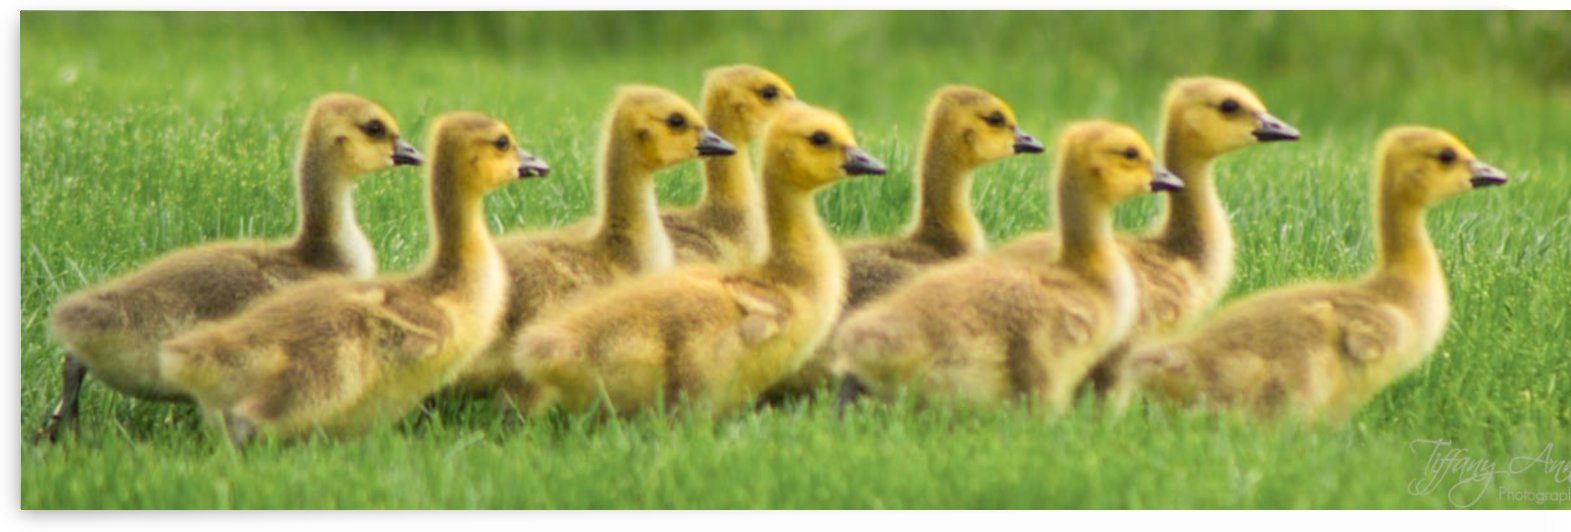 Get Your Geese in a Row by Tiffany Ross